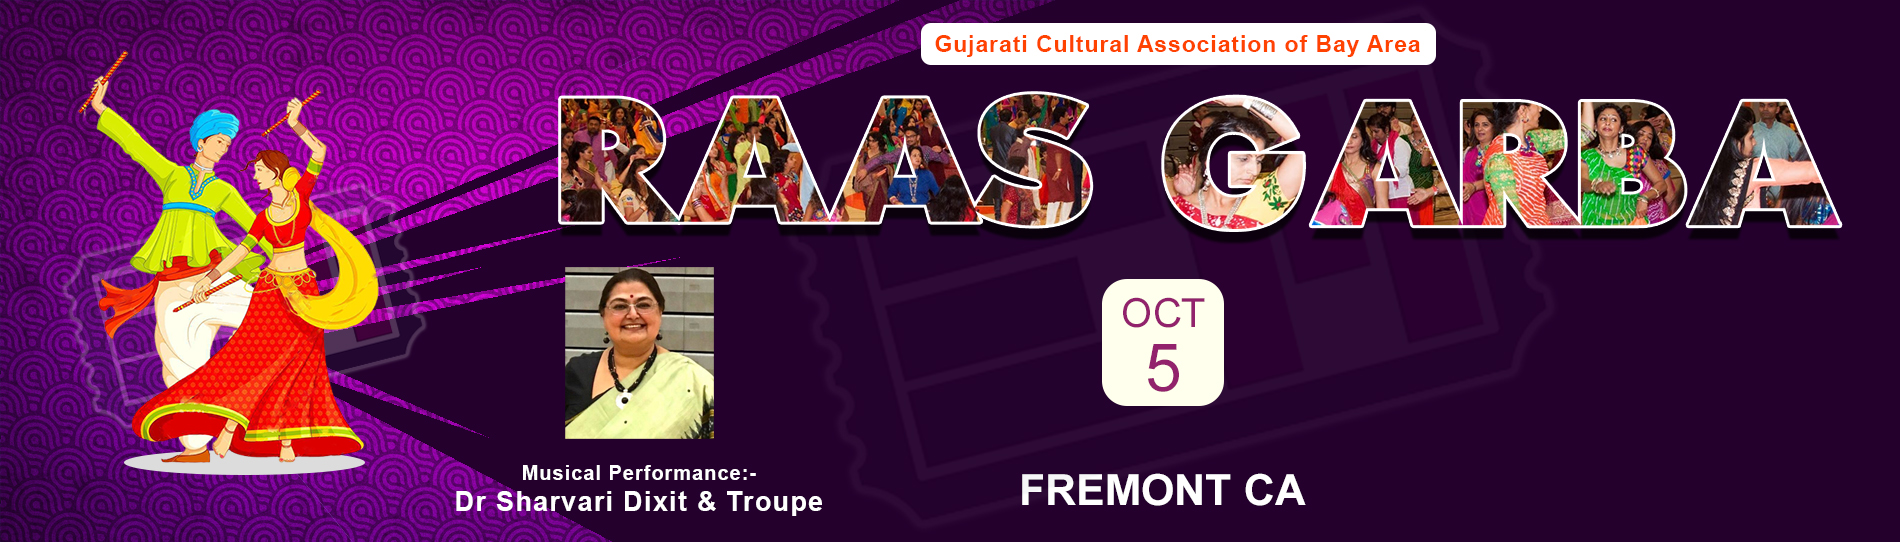 EventMozo GCA Bay Area Raas Garba 2019